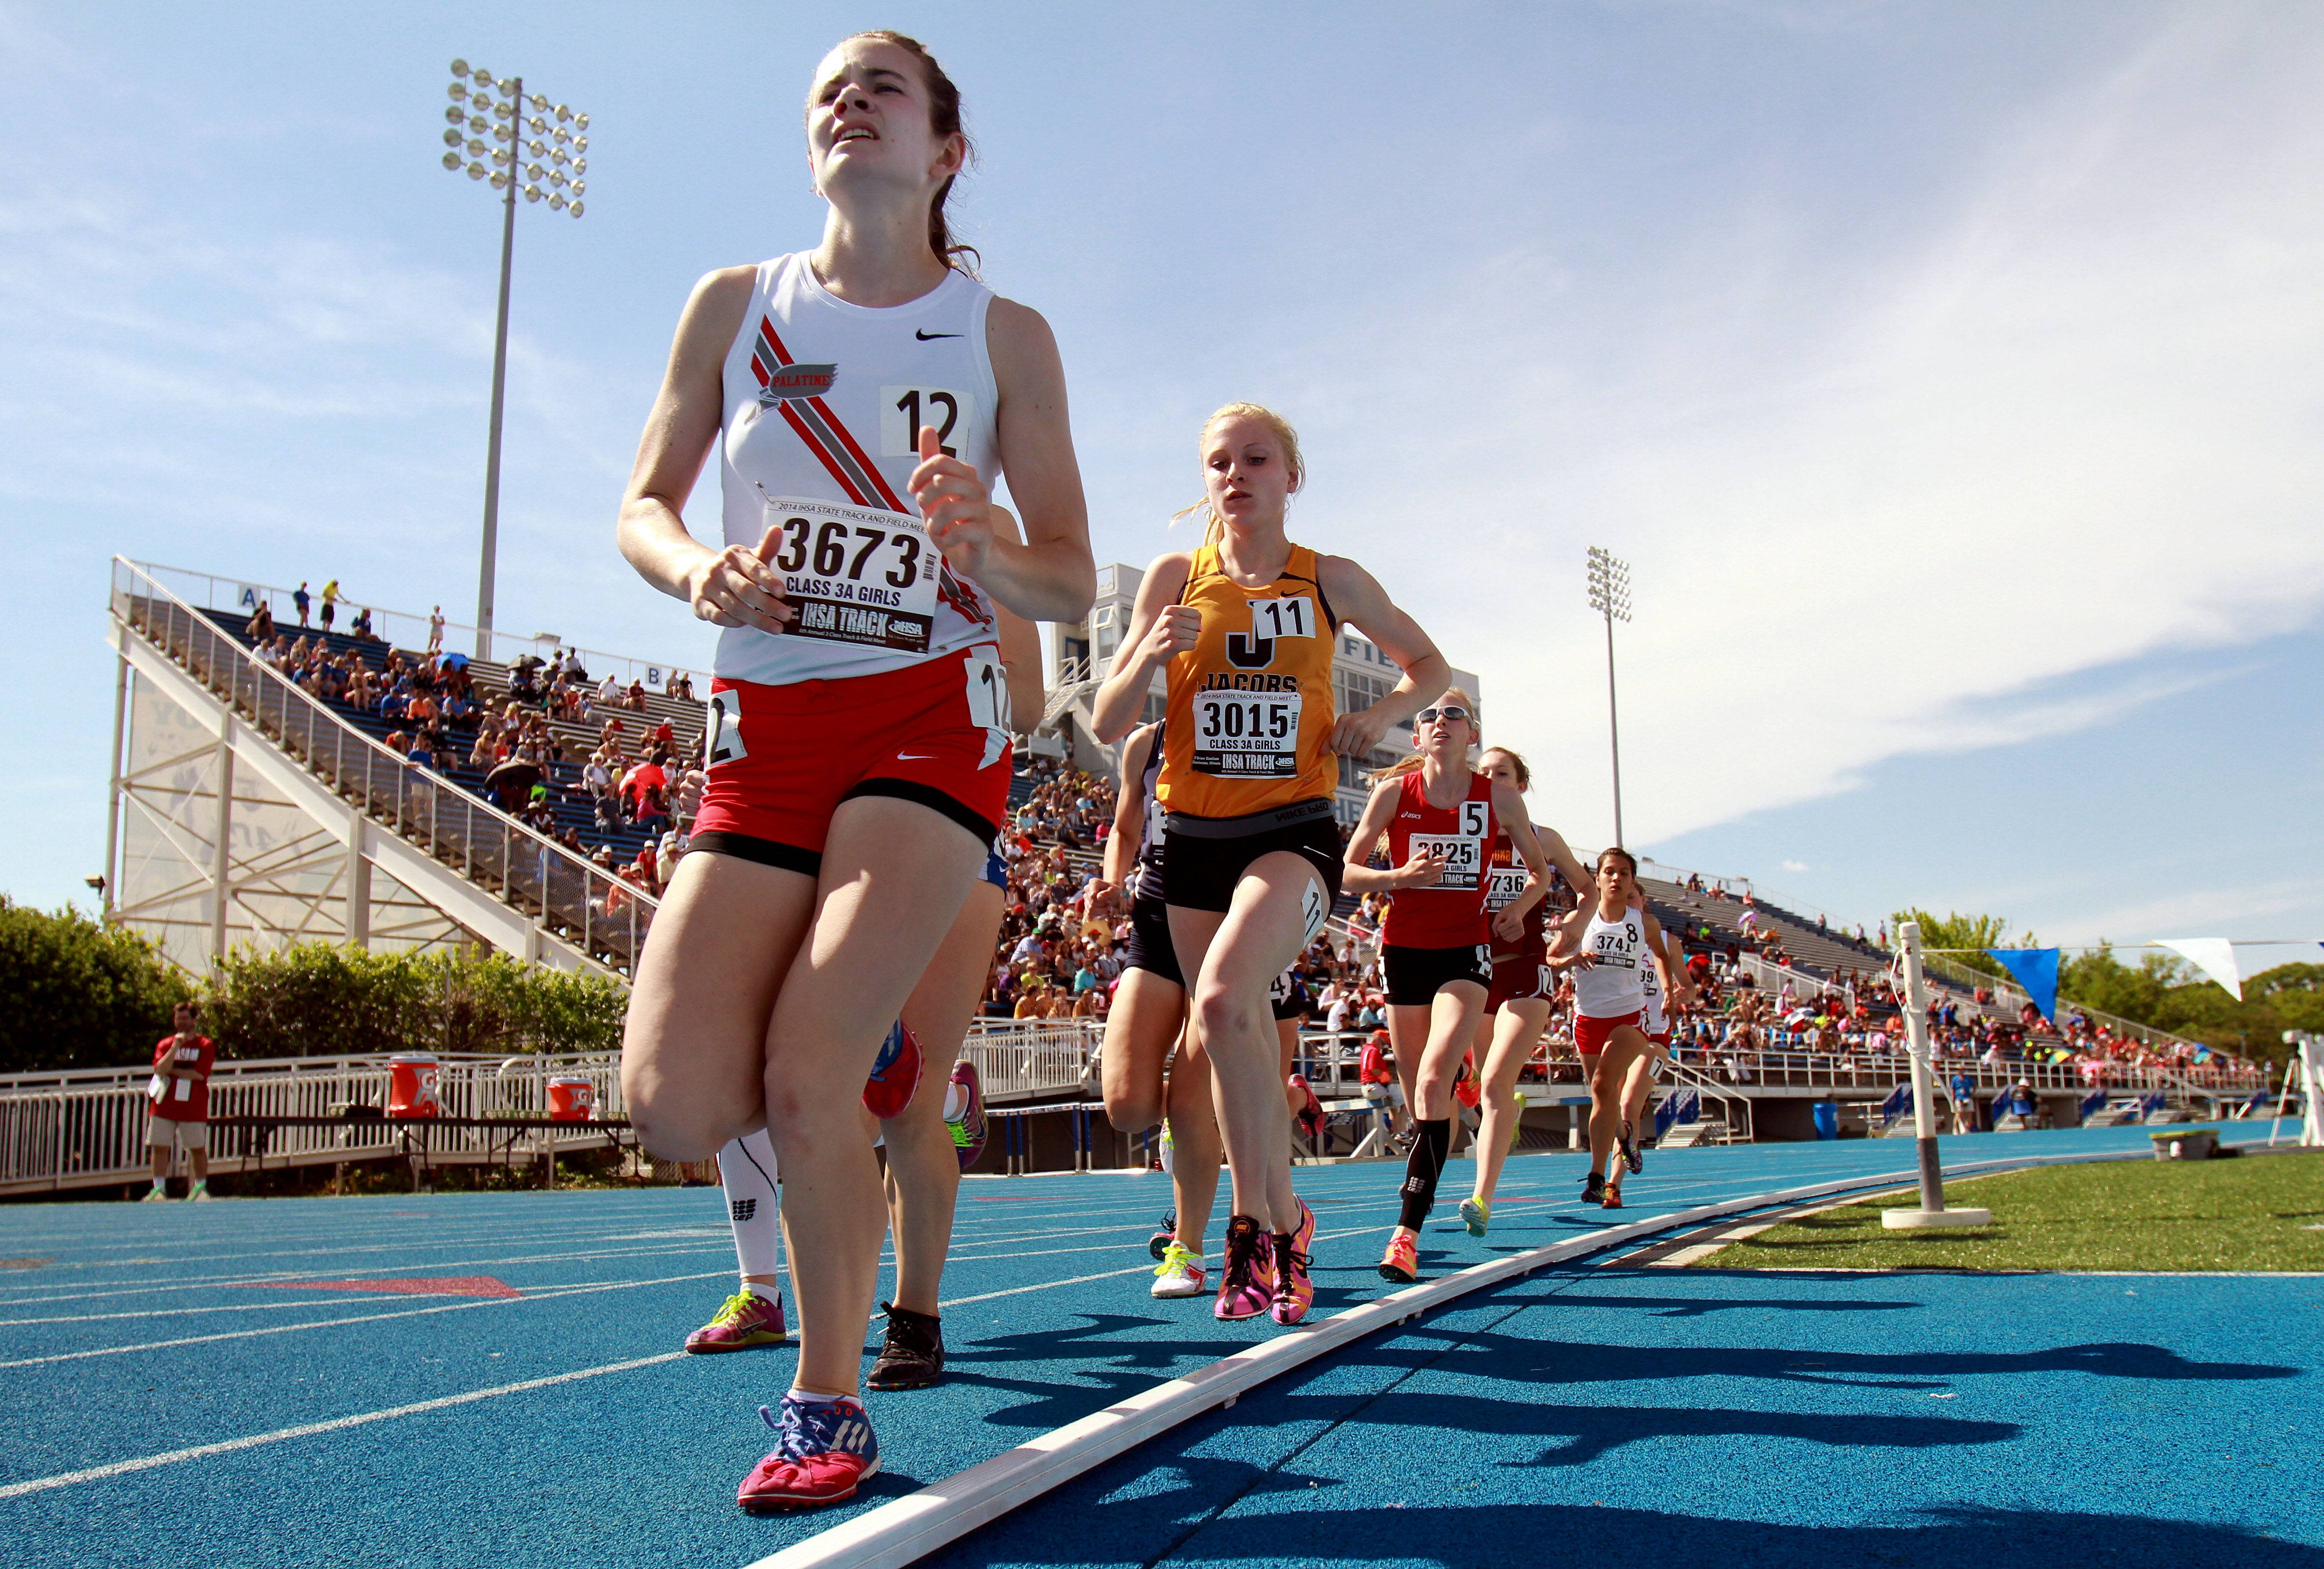 Palatine's Kelly O'Brien leads the pack in the 1,600-meter run during the Class 3A prelims of the girls track and field state meet at Eastern Illinois University in Charleston on Friday.